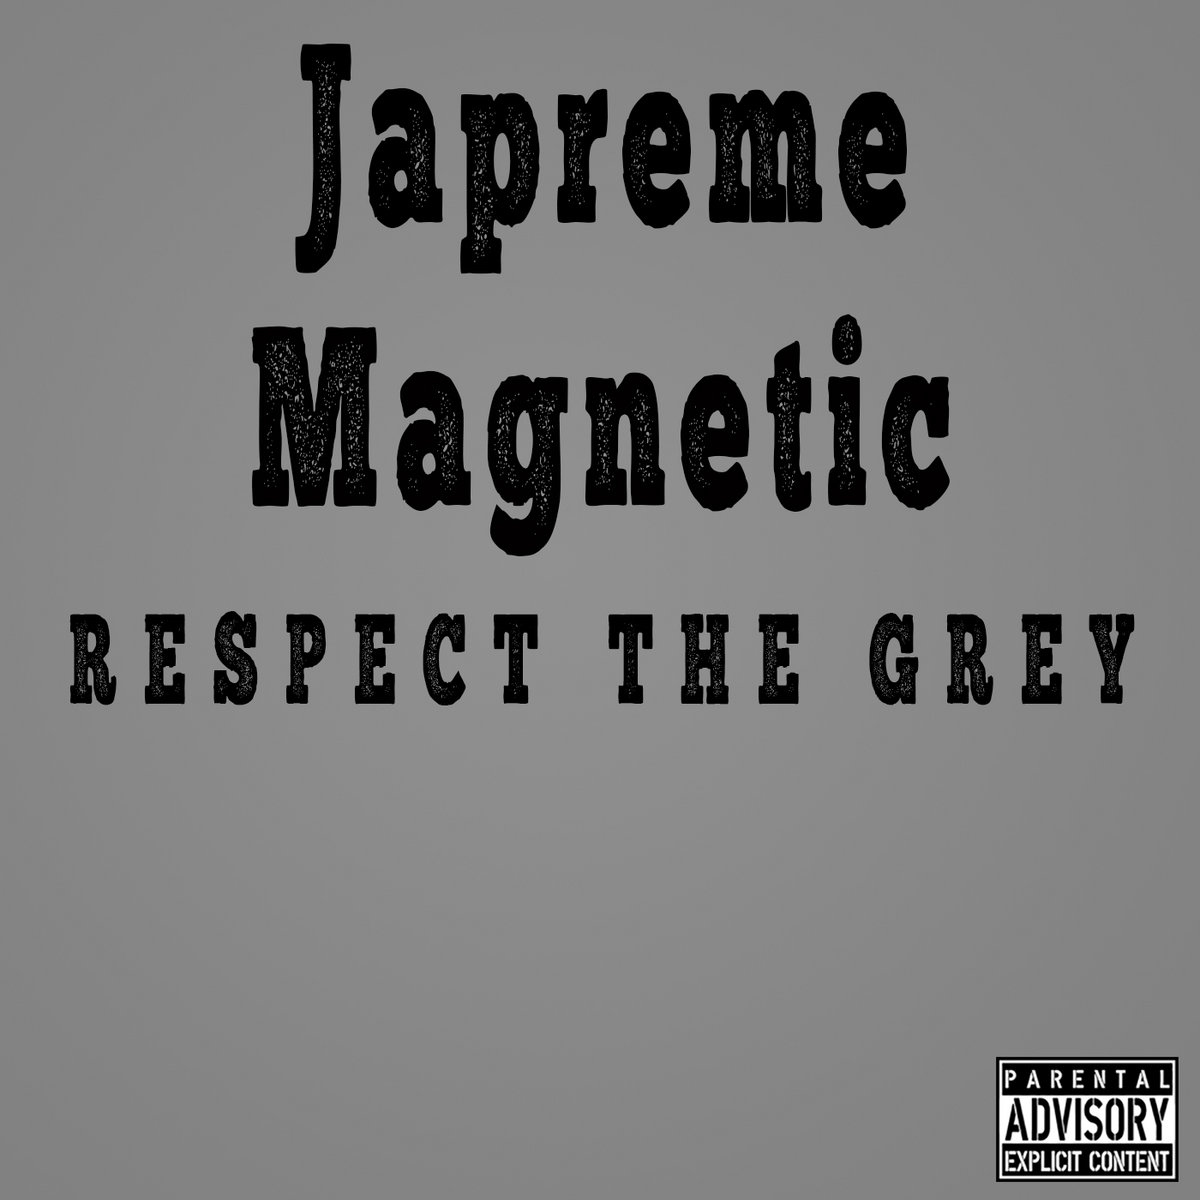 Respect The Grey Japreme Magnetic